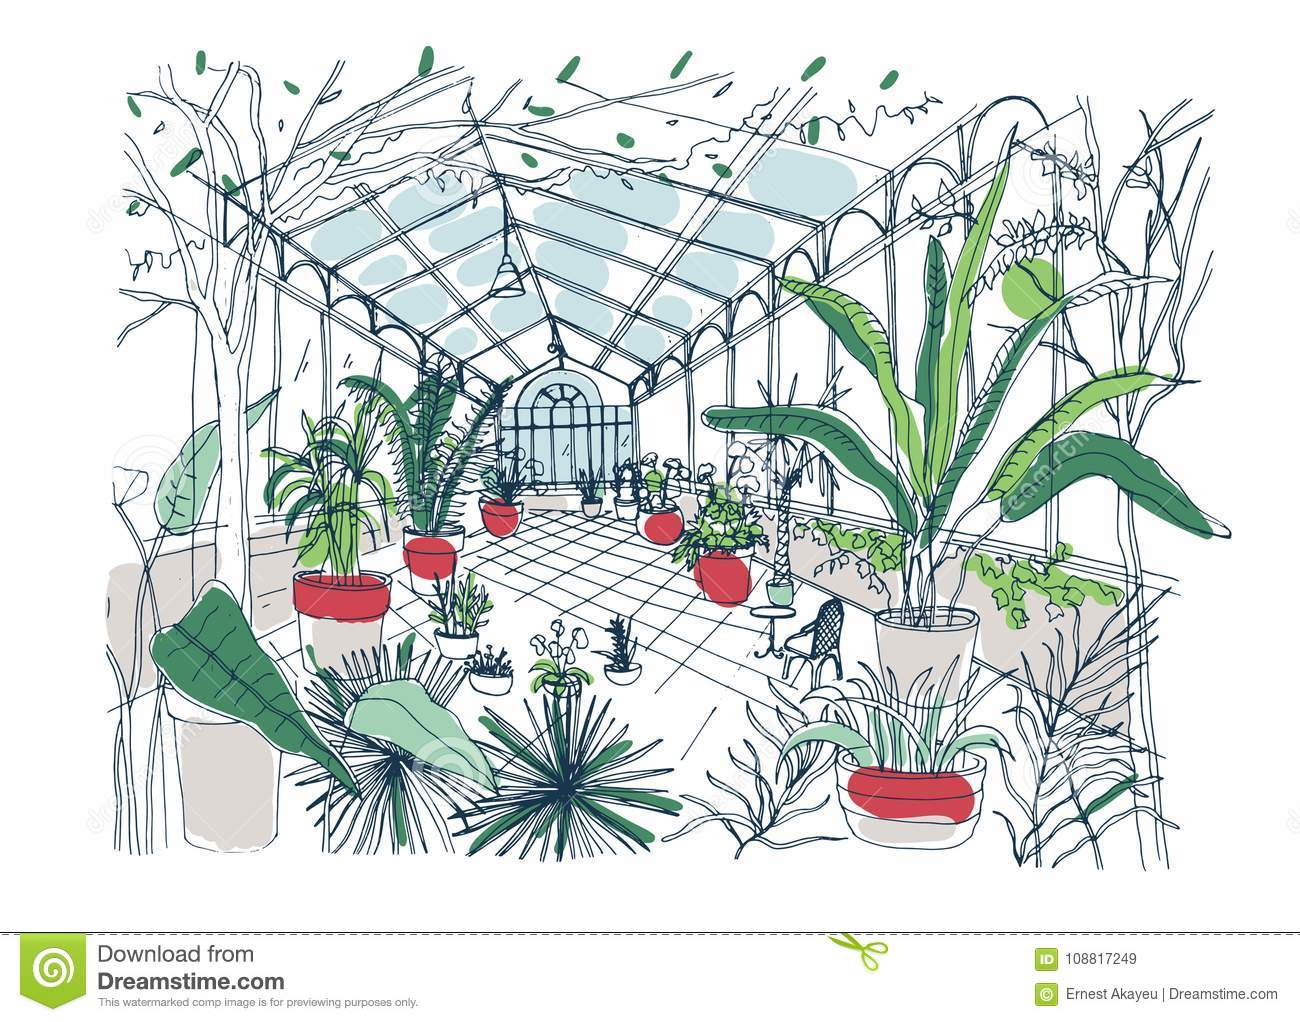 Orangery cartoons illustrations vector stock images for Planta tropical interior